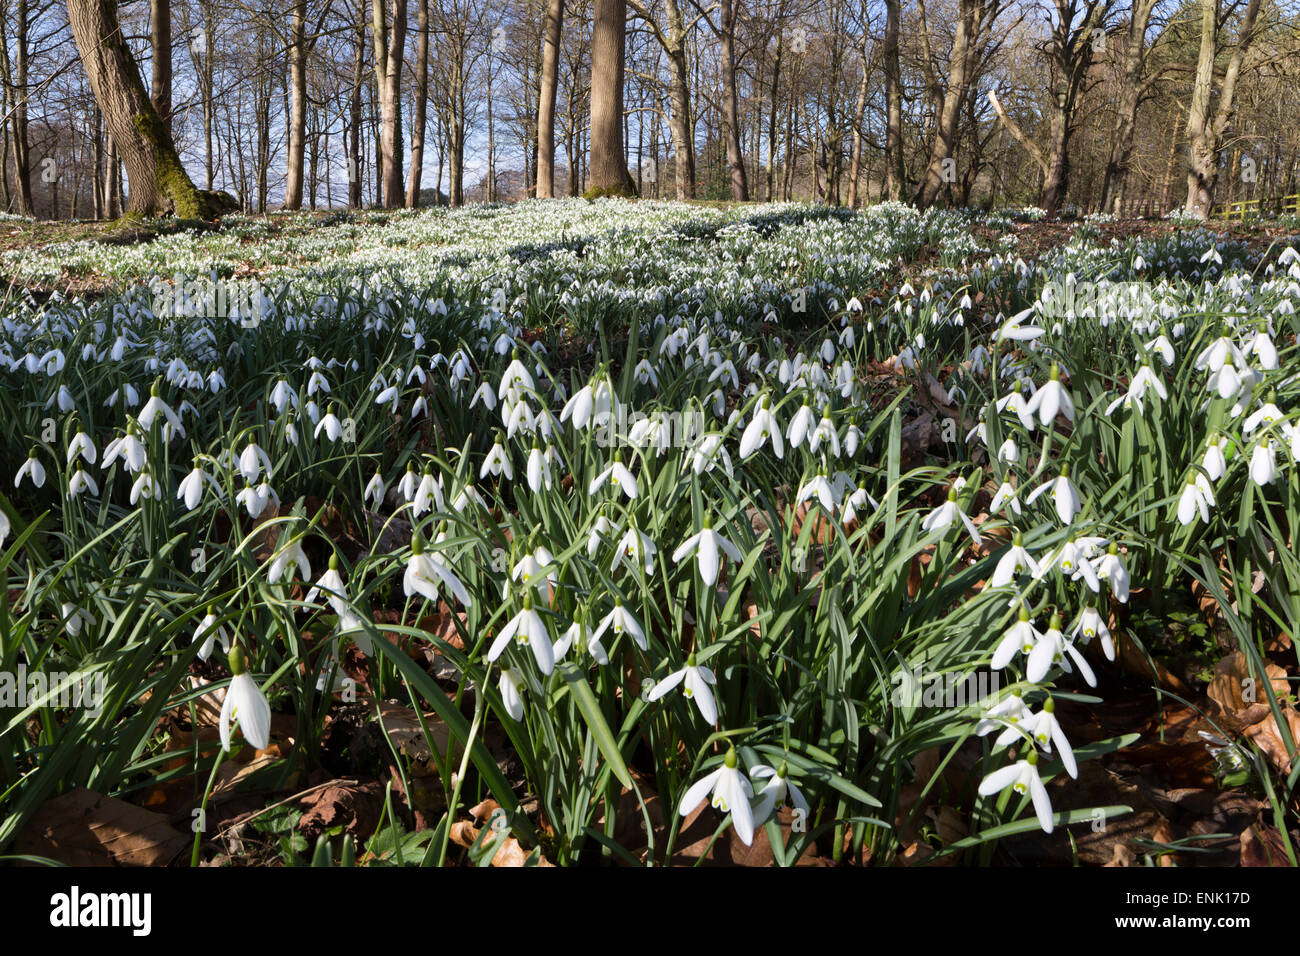 Snowdrops in woodland, near Stow-on-the-Wold, Cotswolds, Gloucestershire, England, United Kingdom, Europe Stock Photo